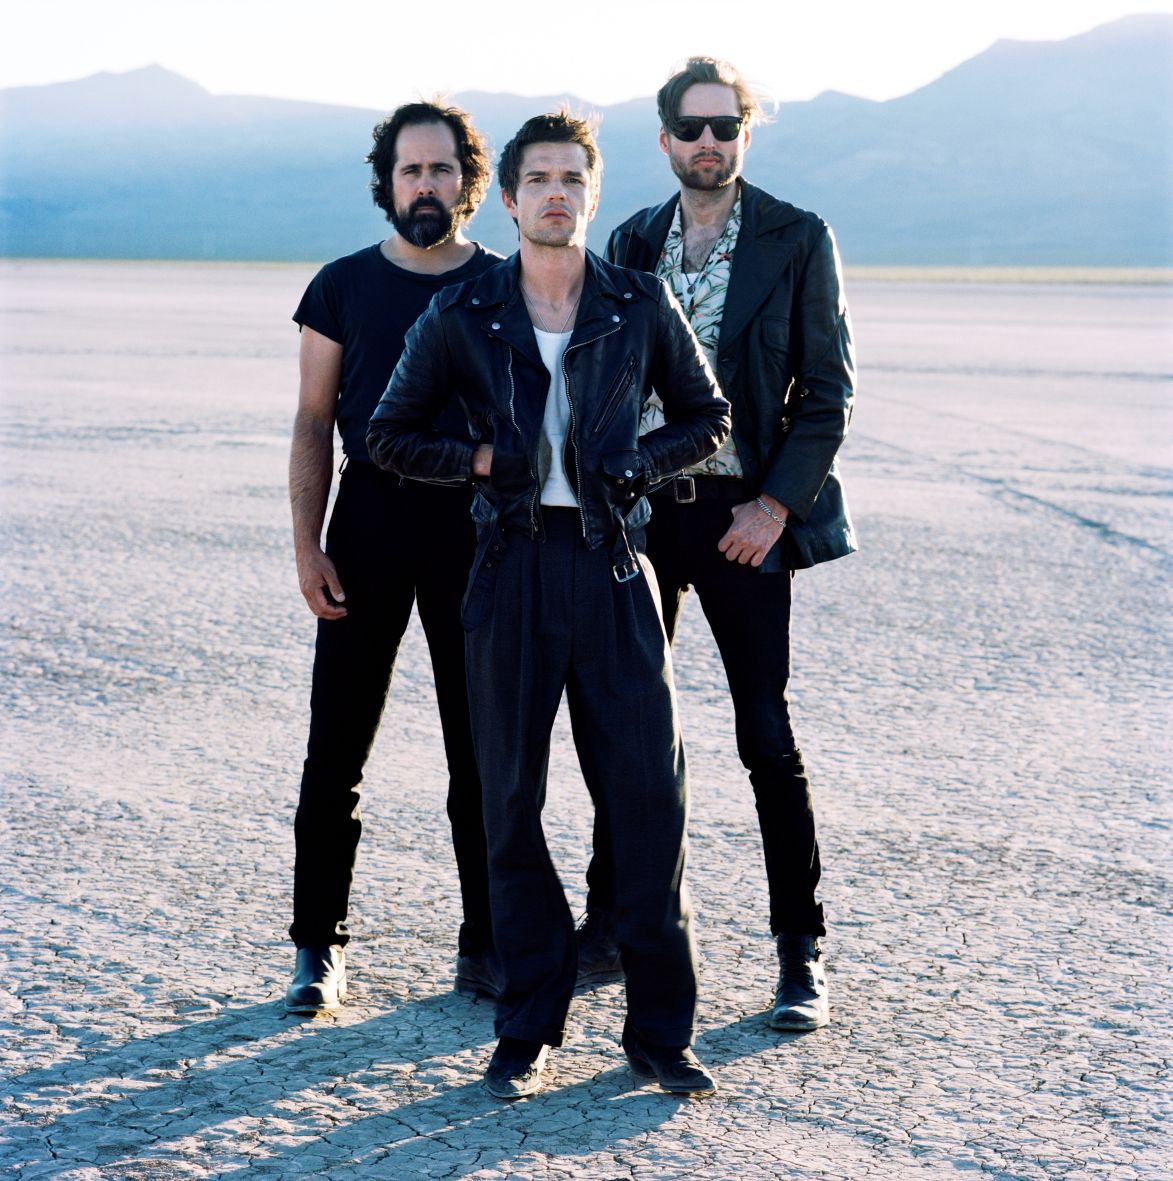 "IL 22 settembre esce il nuovo album dei The Killers ""Wonderful Wonderful"""